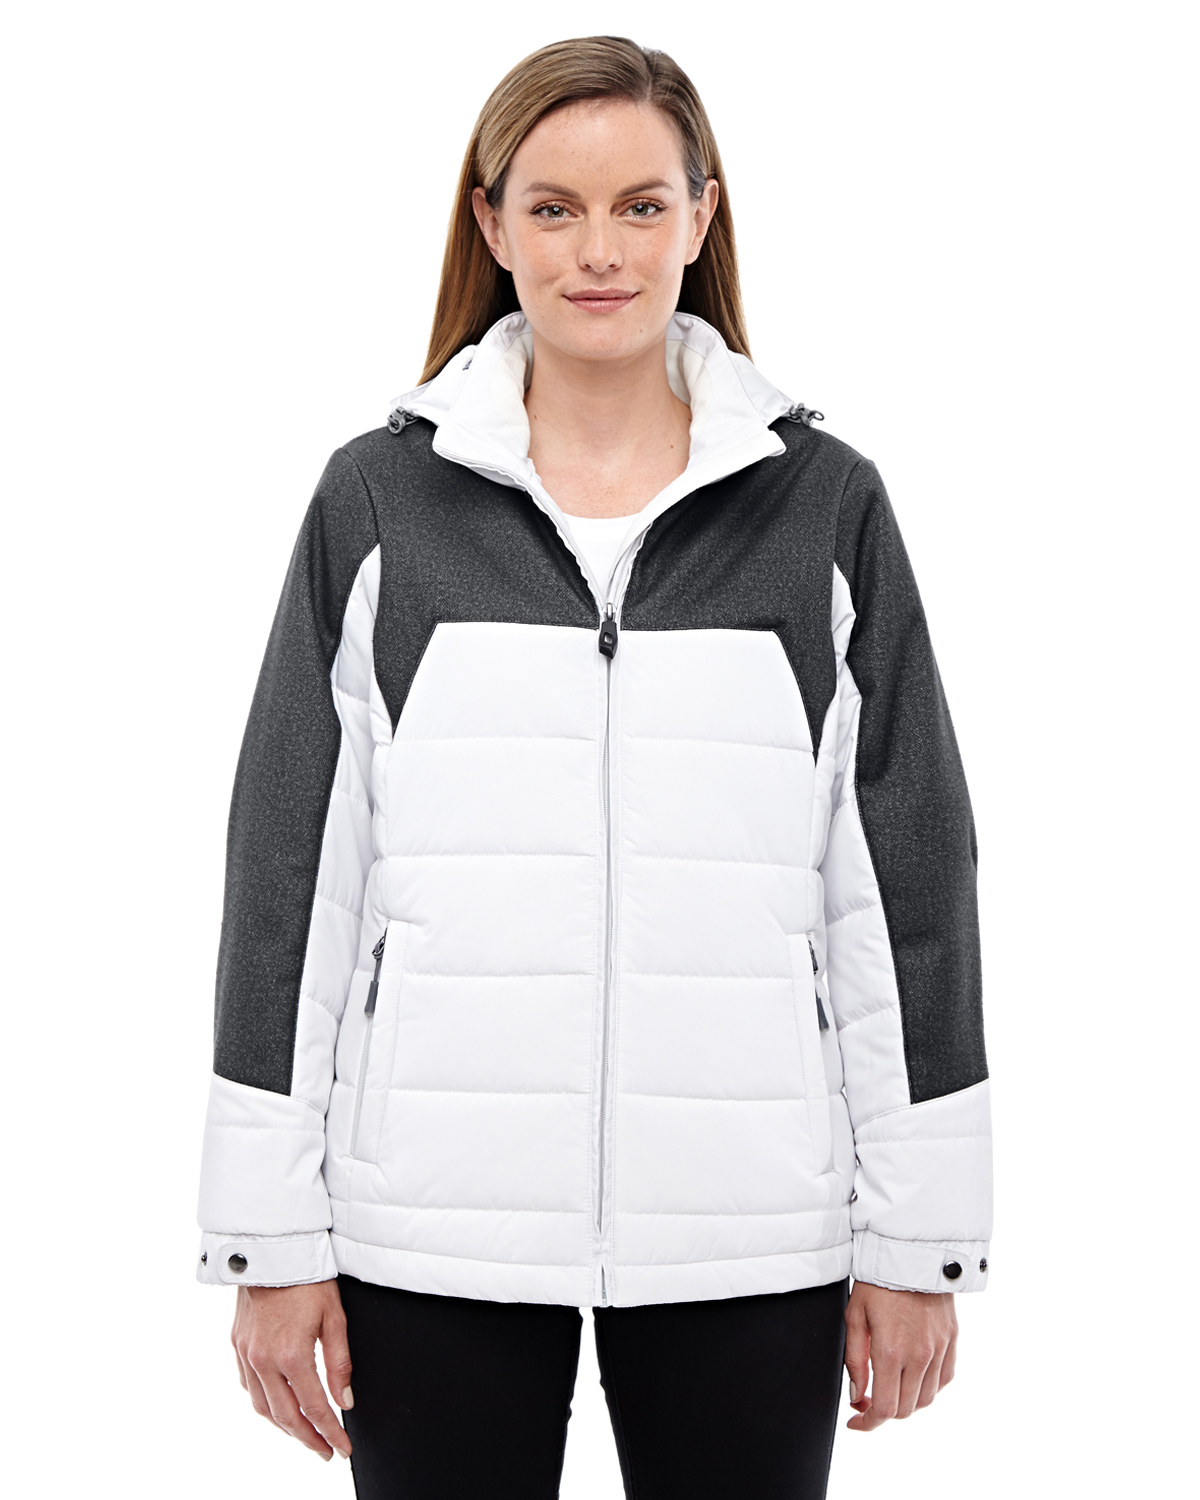 Ash City - North End 78232 - Ladies' Excursion Meridian Insulated Jacket with Melange Print